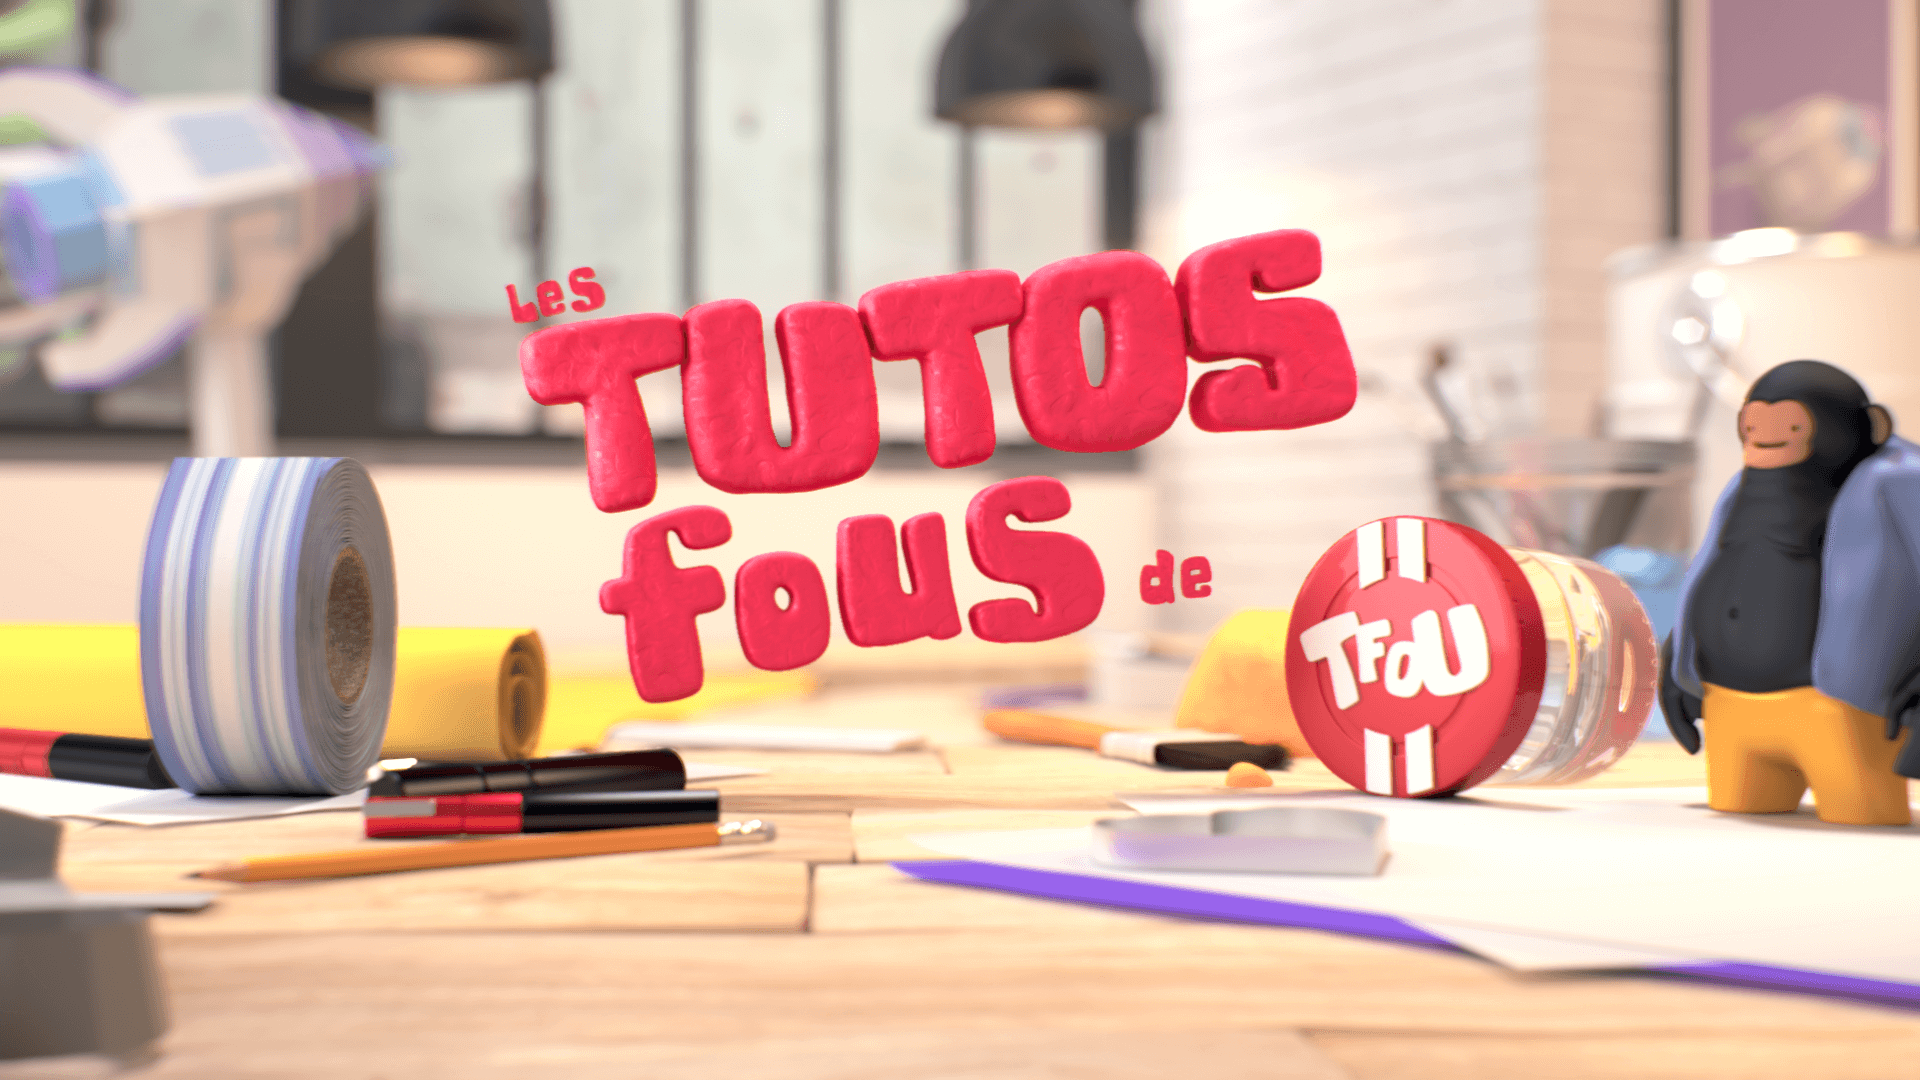 Logo end screen of our 3D stop motion animation for Tfou